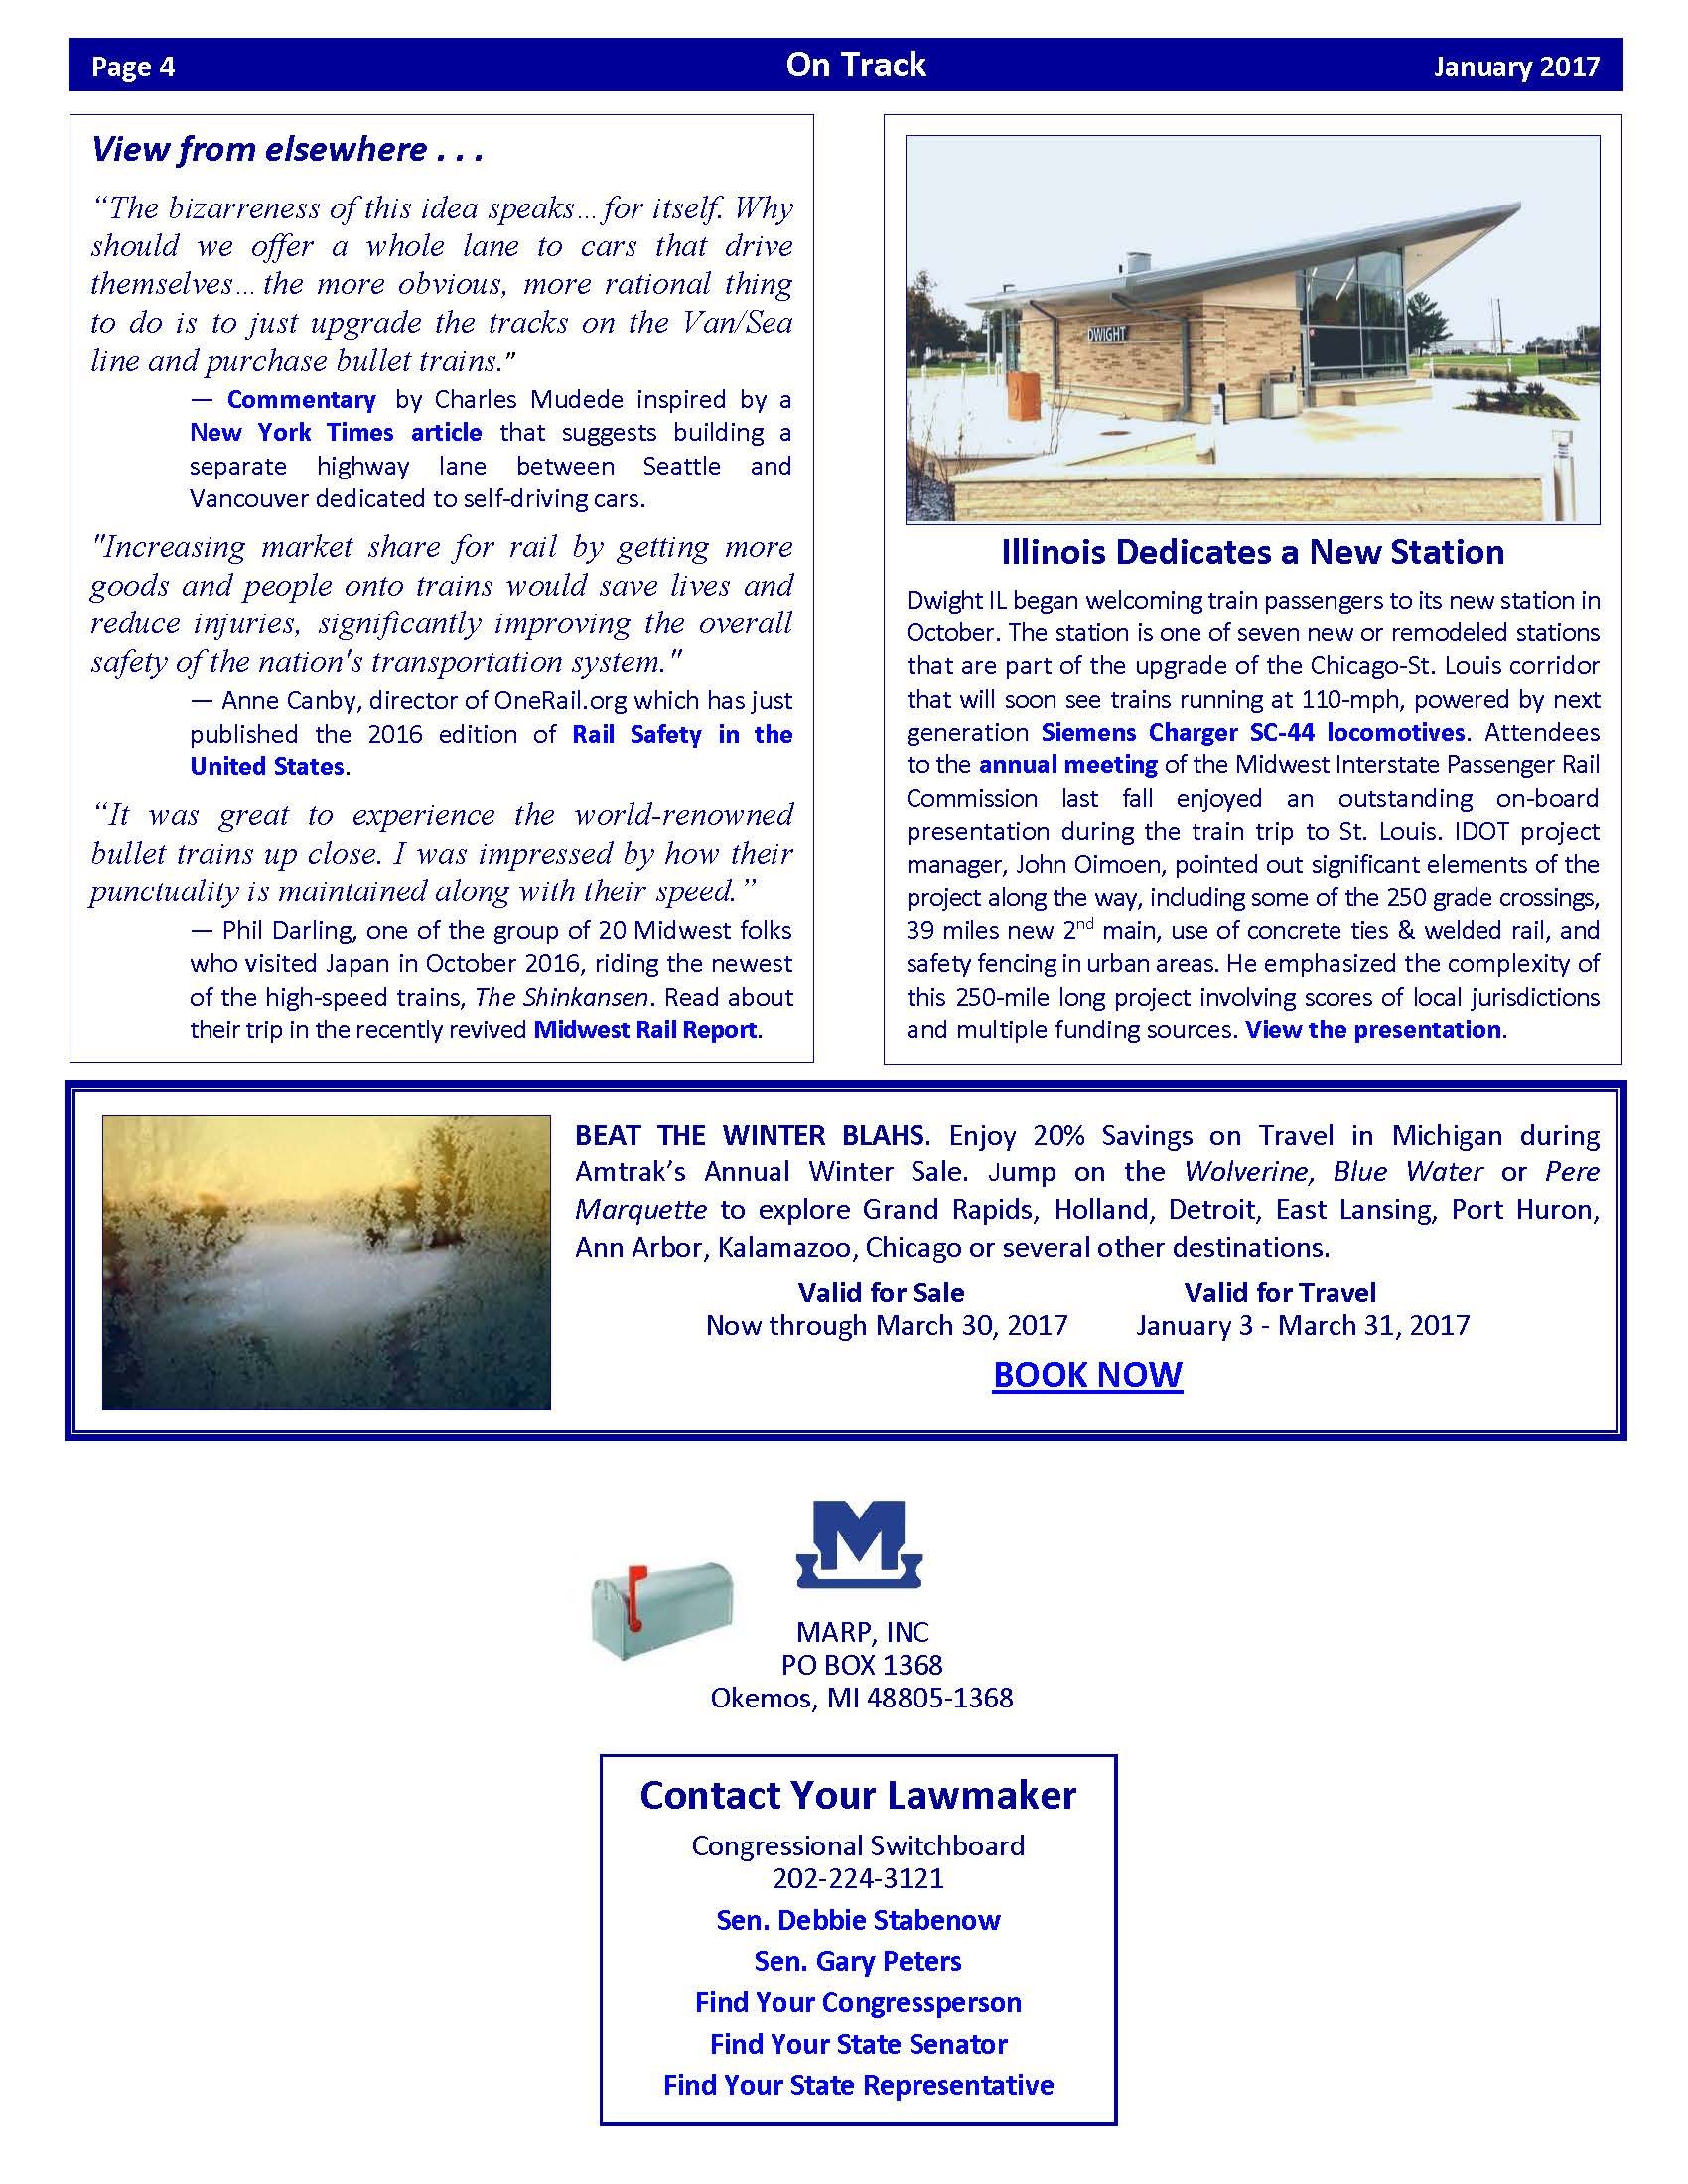 January 2017 edition of OnTrack | Michigan Association of